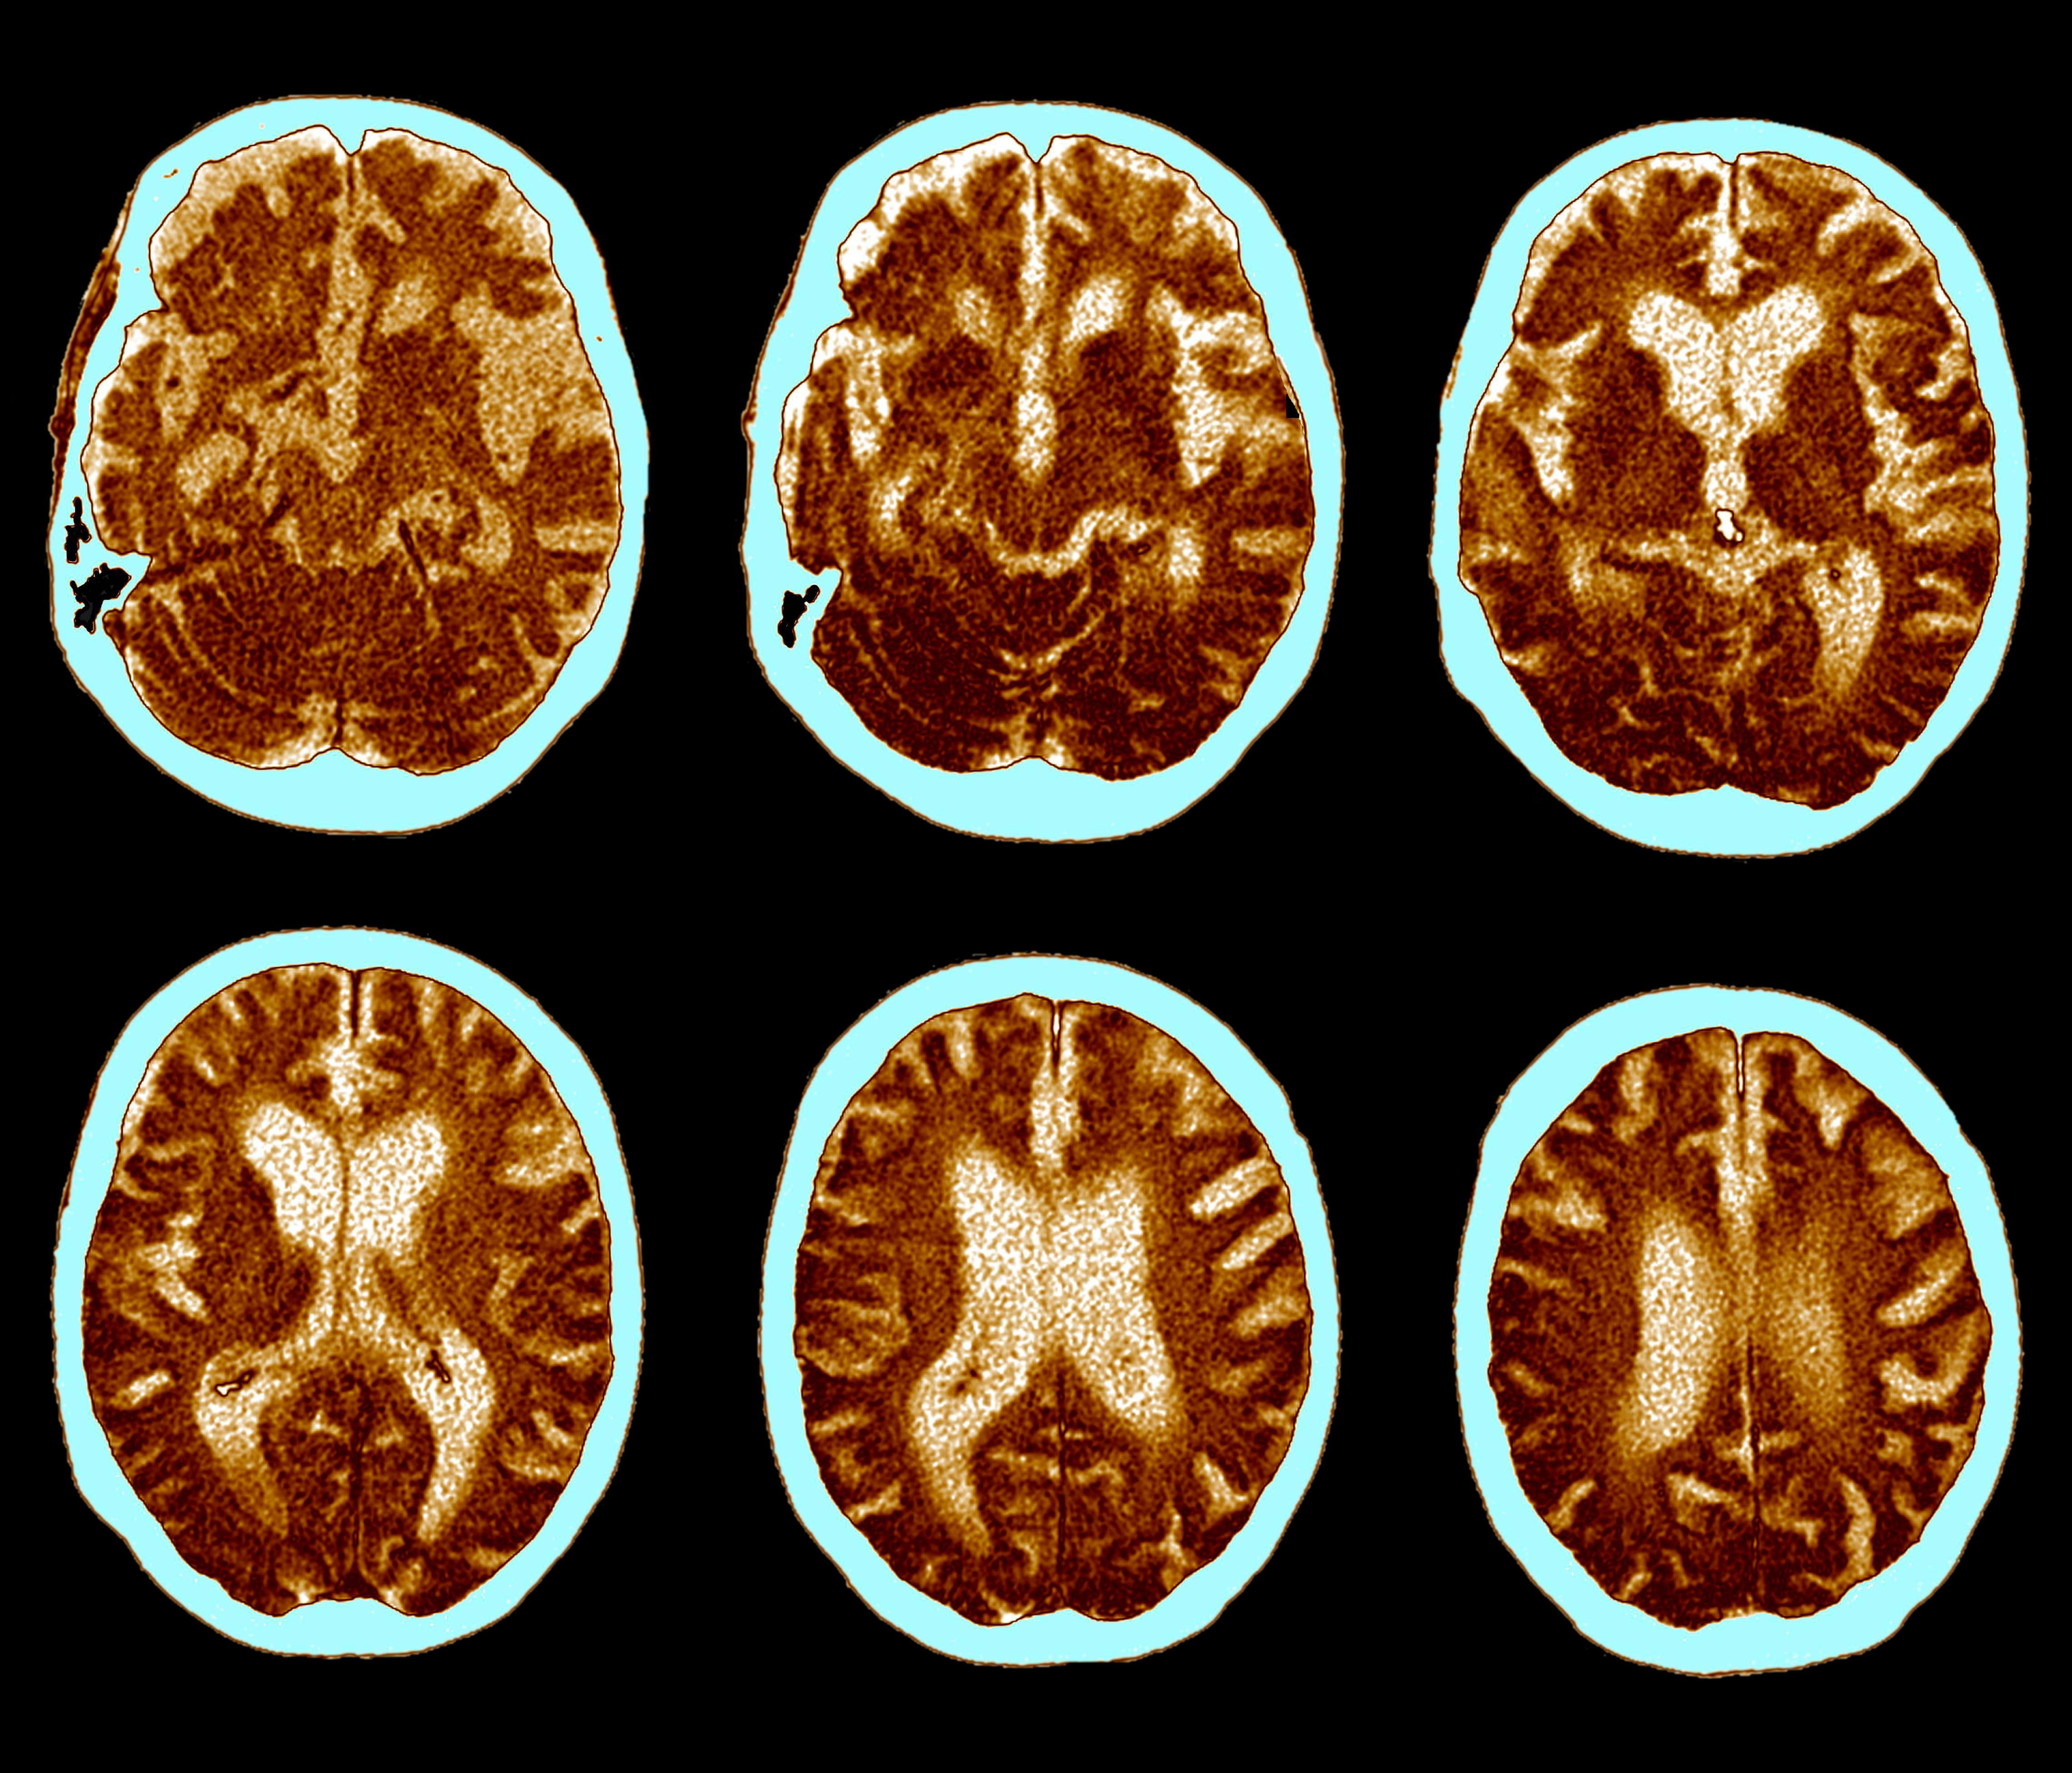 Eating at the same time each day 'could help fight Alzheimer's'